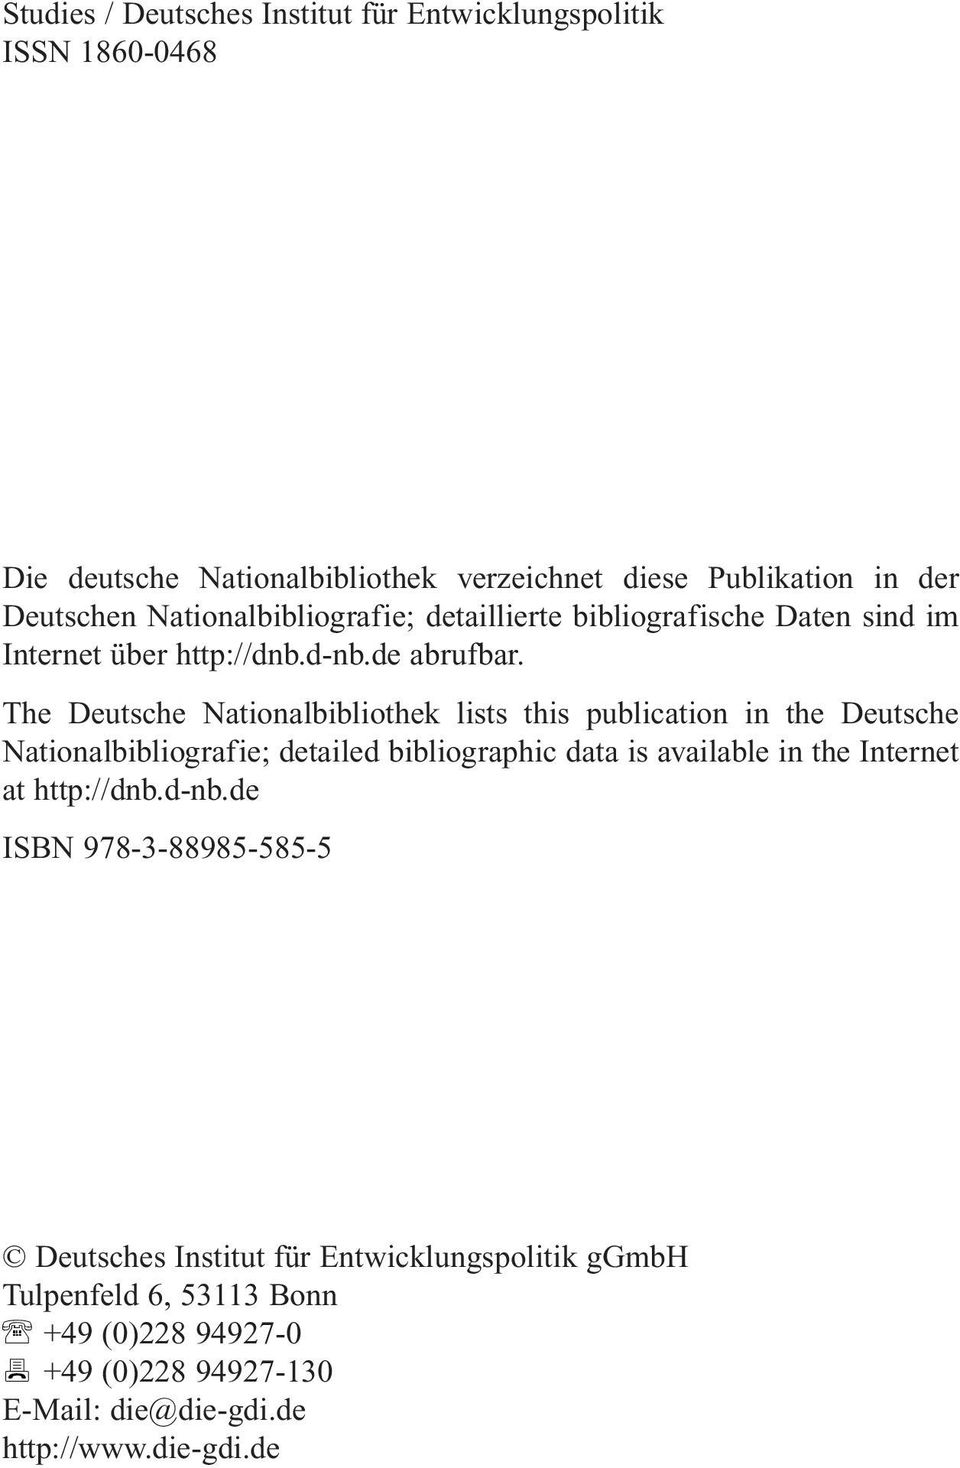 The Deutsche Nationalbibliothek lists this publication in the Deutsche Nationalbibliografie; detailed bibliographic data is available in the Internet